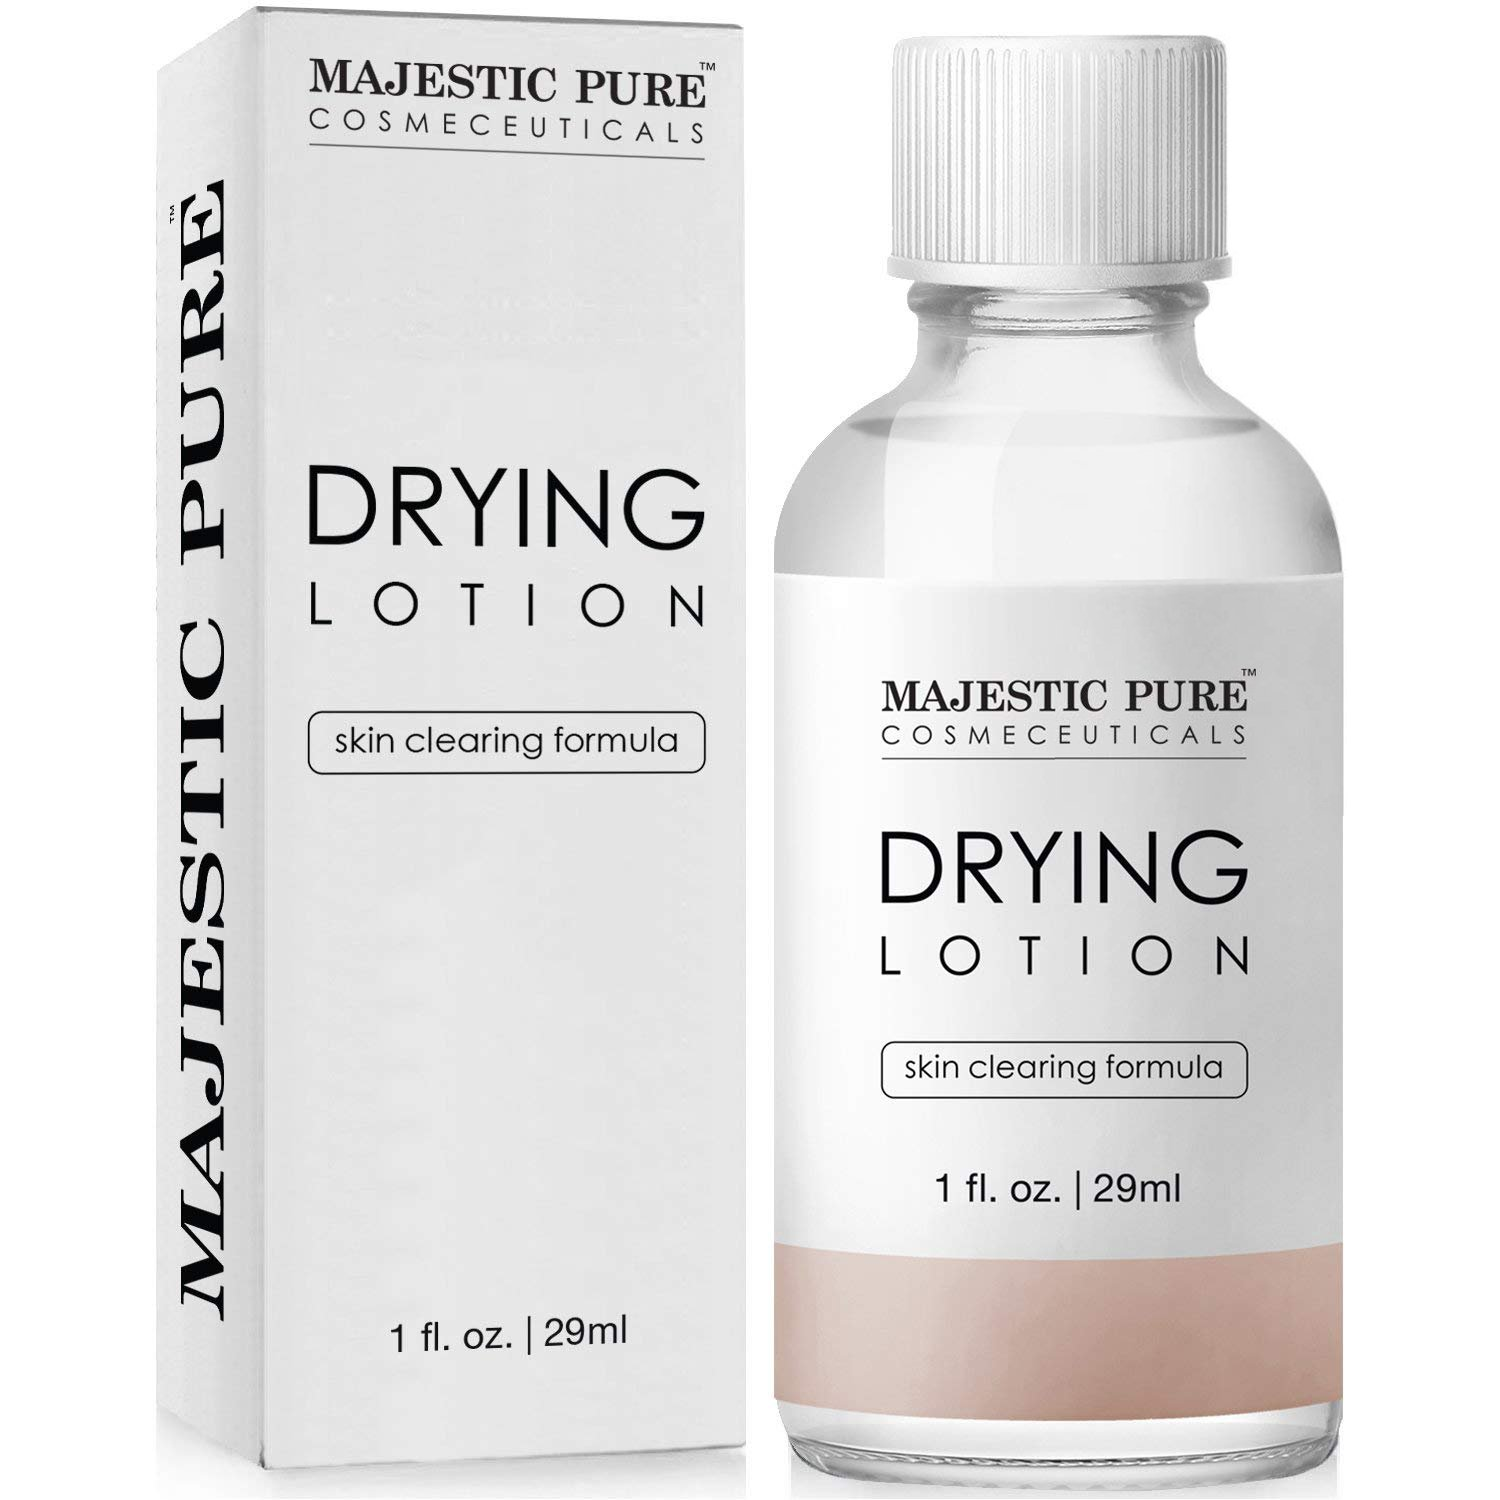 Majestic Pure Acne Drying Lotion, Acne and Pimples Skin Care Formula, 1 fl. oz.